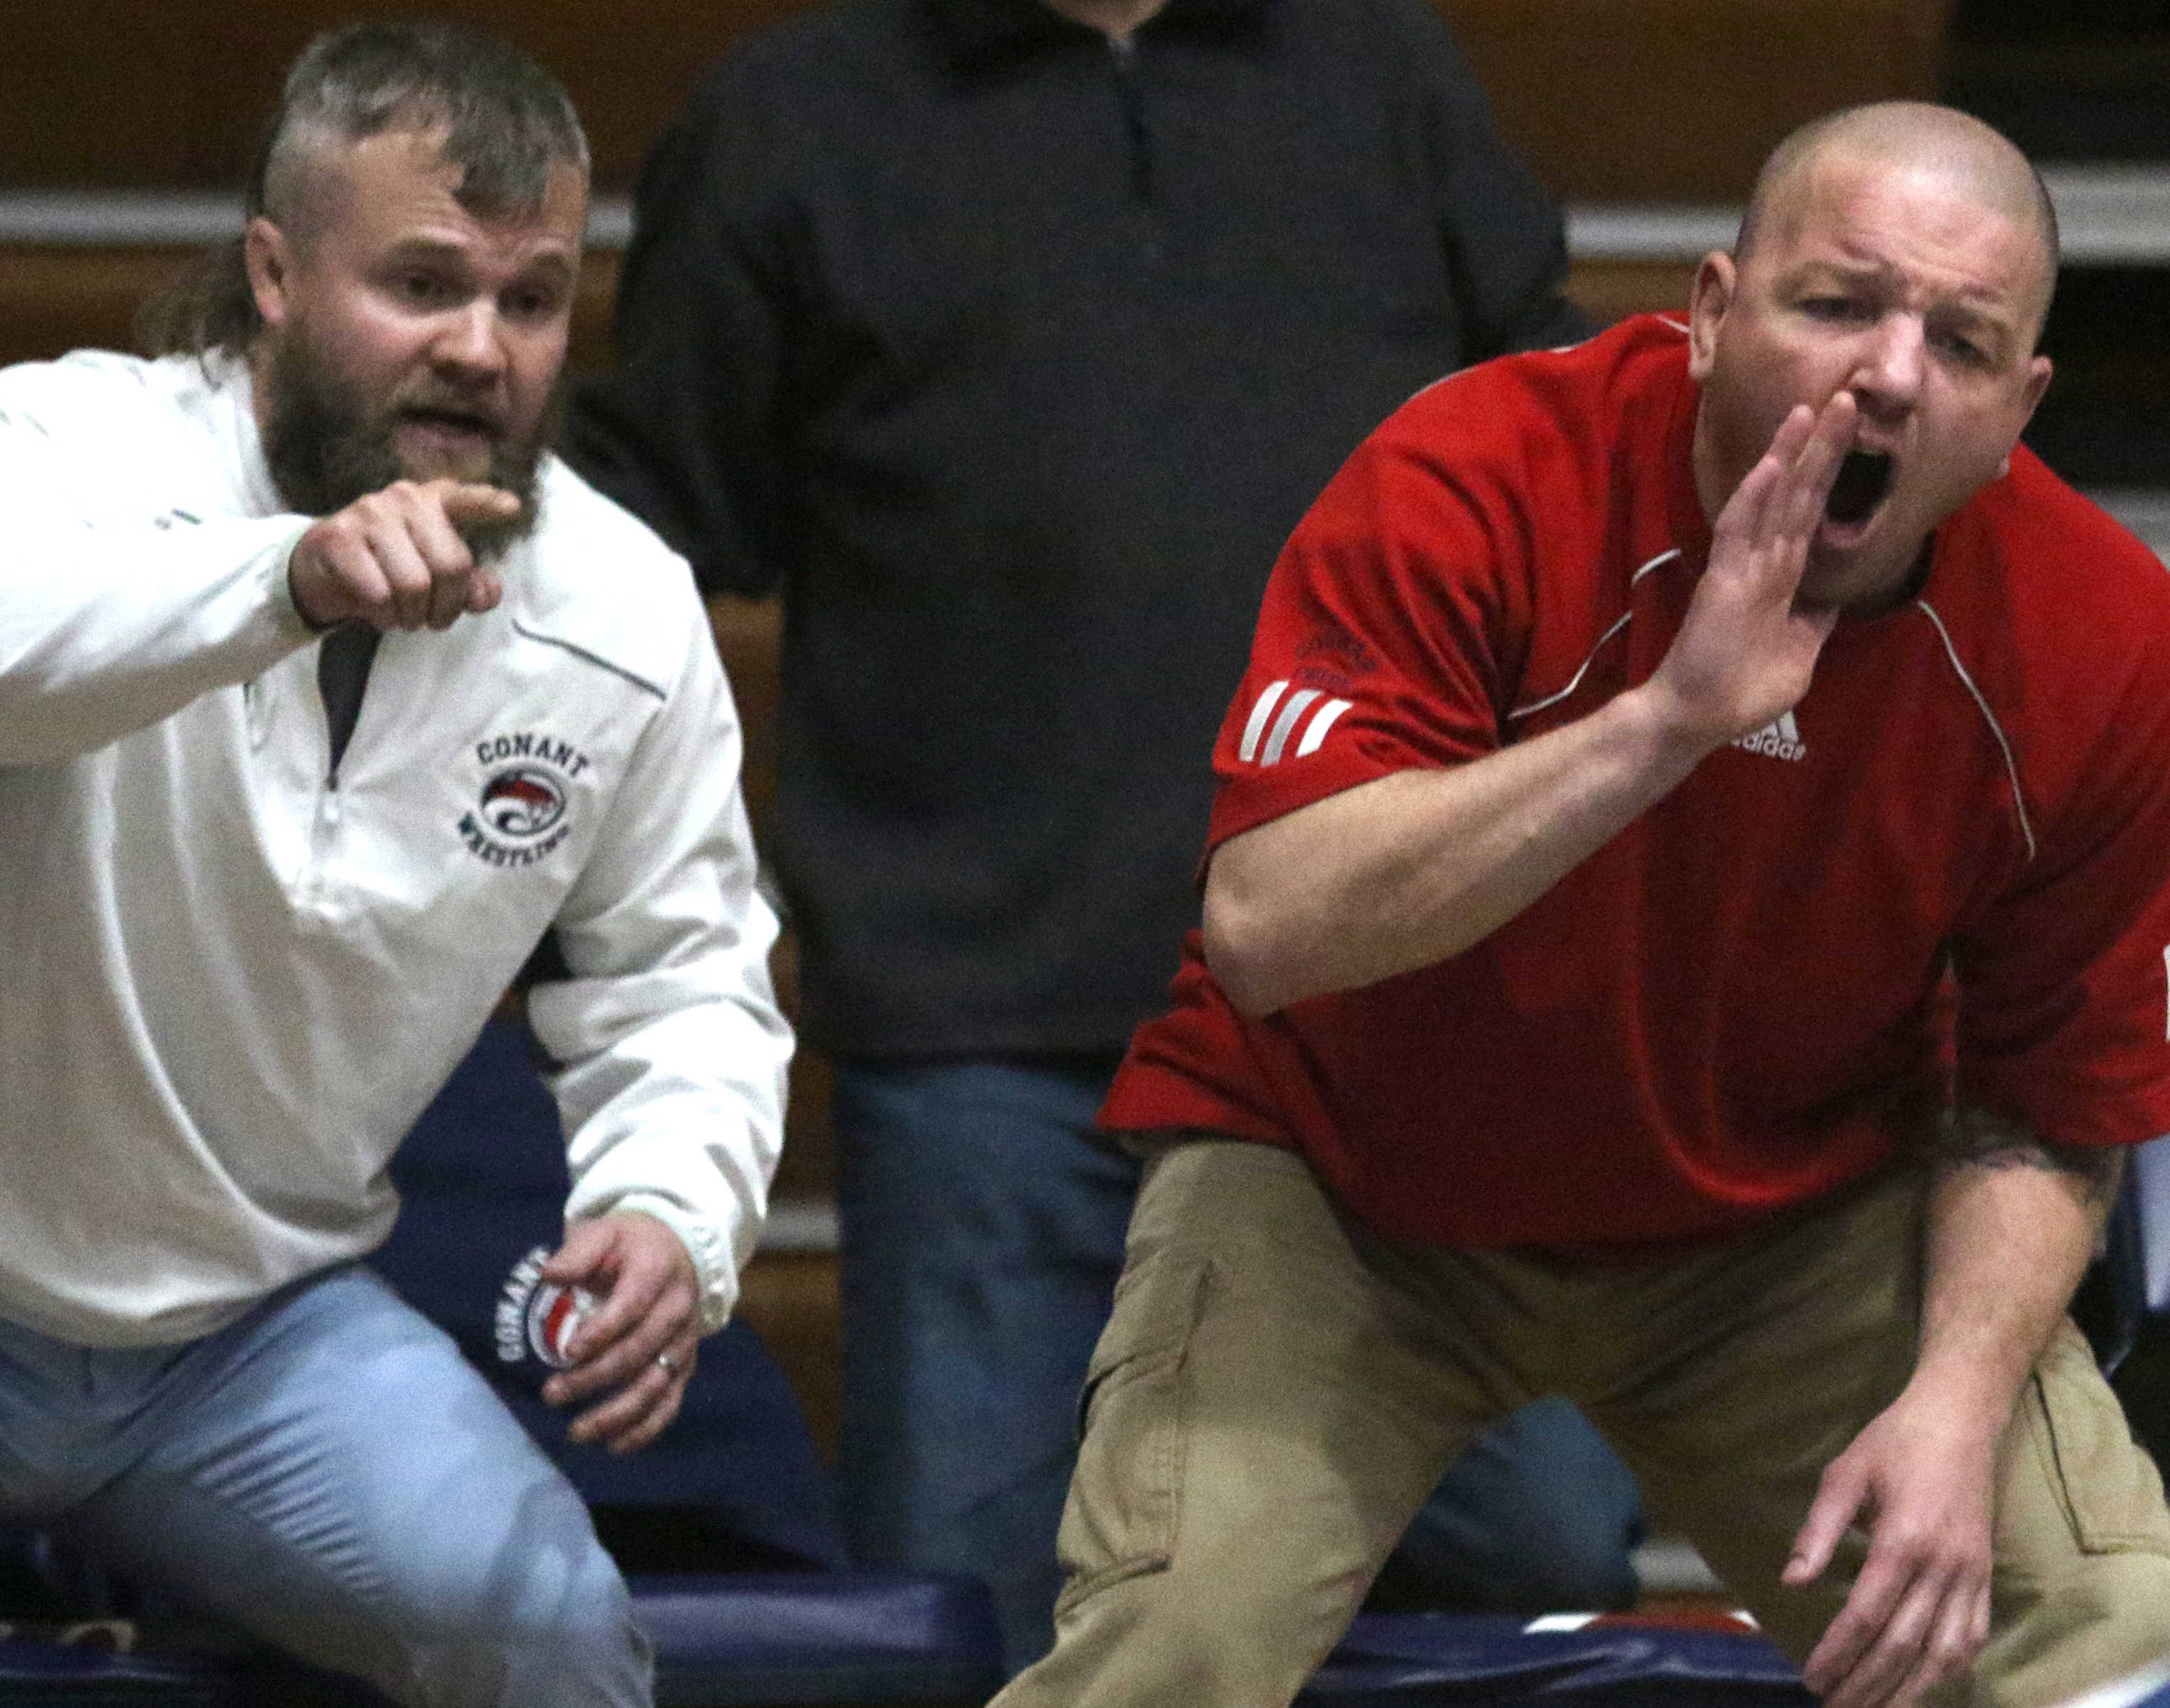 Conant coach Chad Hay, left, and assistant coach Chris Winter guide their wrestlers against Notre Dame during team wrestling sectional action at William N. Perry Gymnasium at Conant on Tuesday.